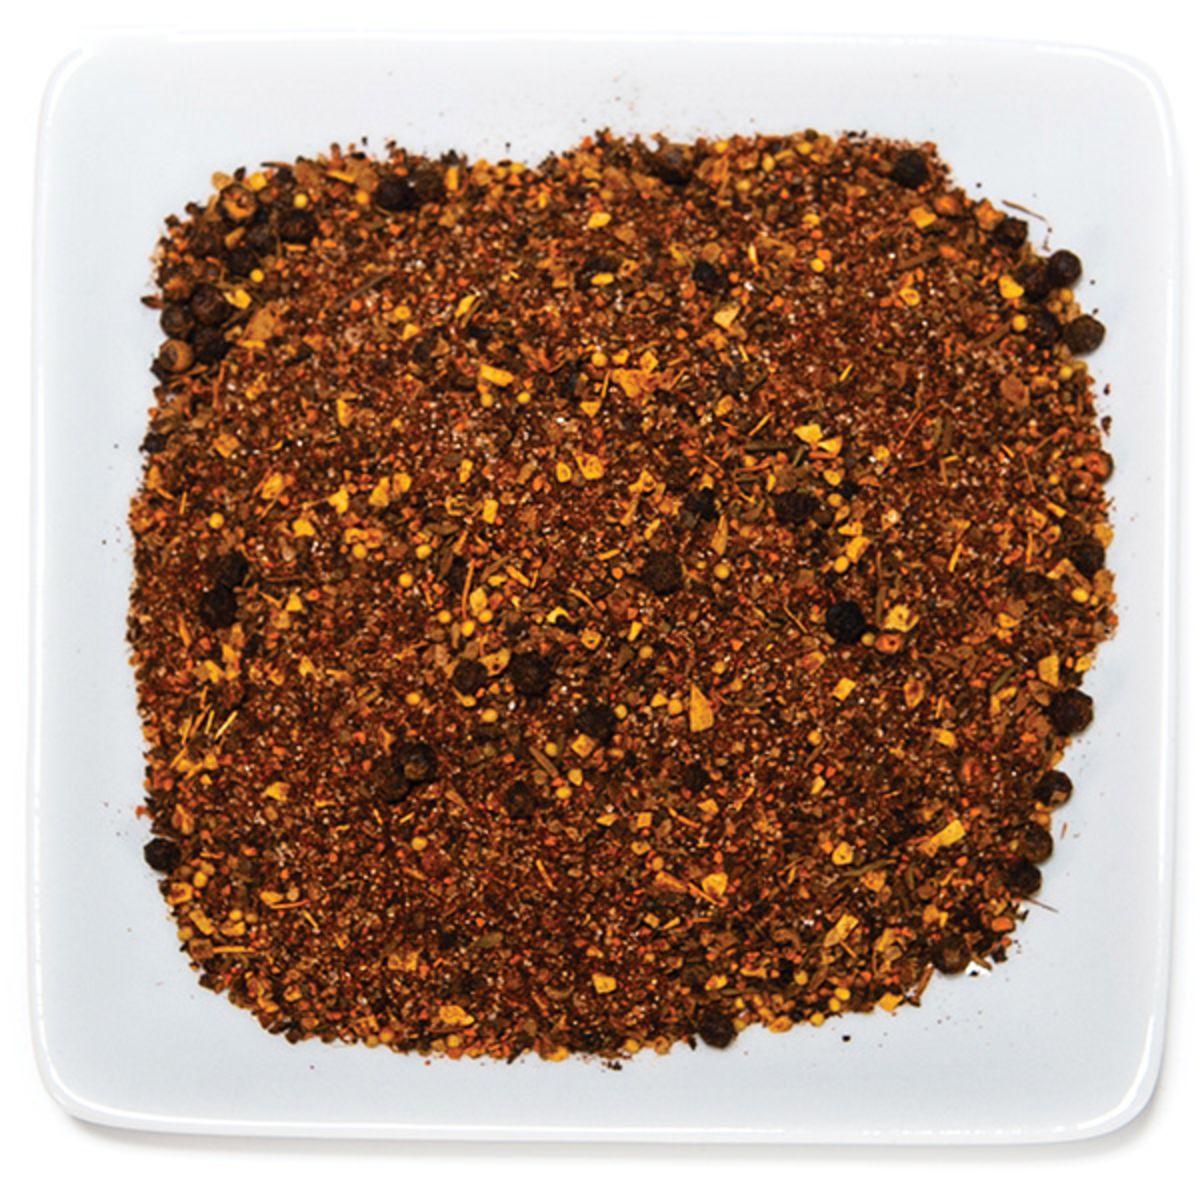 Kansas City Steak Rub, 5 ozs by weight [3/4 cup by volume]